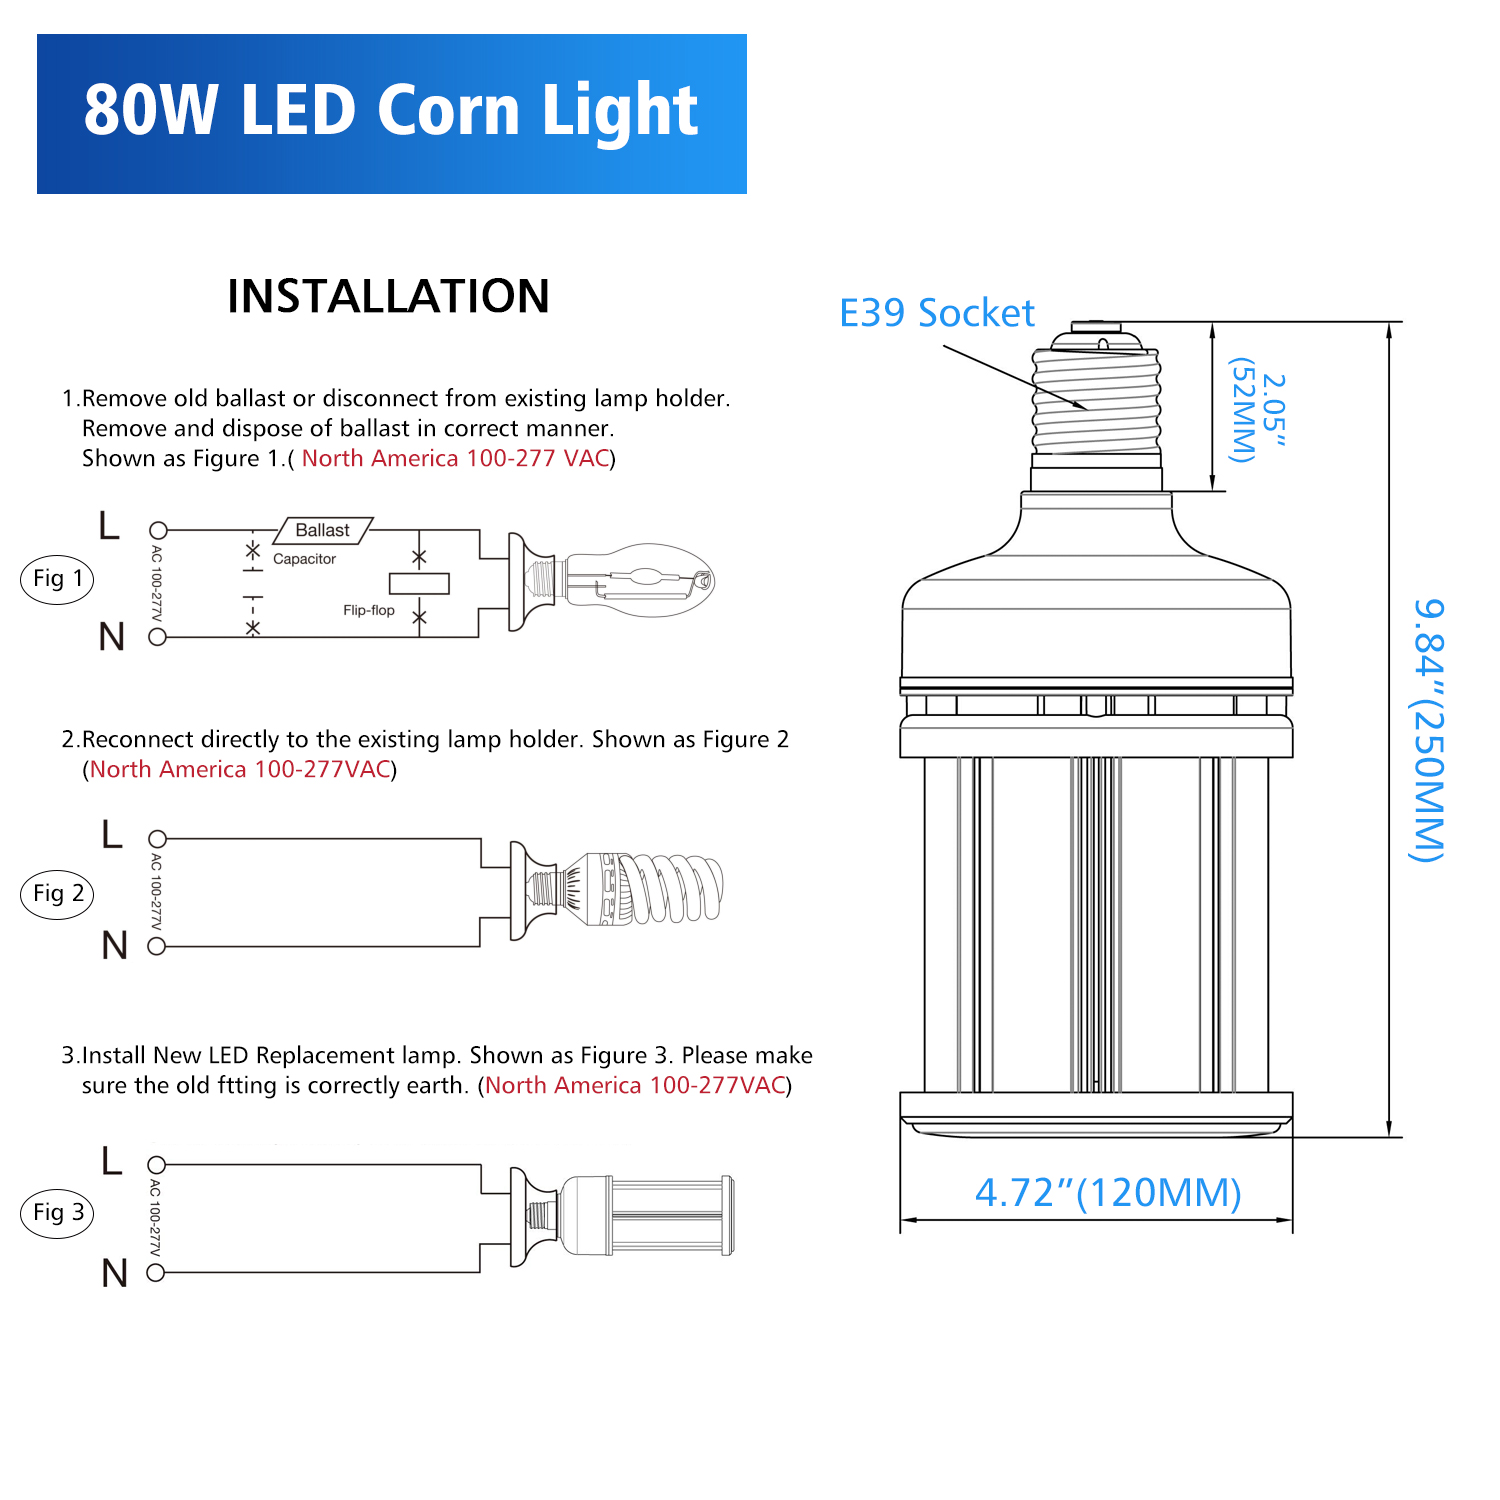 KUKUPPO RCL 80W LED Corn Light Bulb 320W Metal Halide Warehouse High Bay Light E39 Mogul Base 6000K Cool White for Parking Lot Shoebox Warehouse Workshop Garage Gym Corn Cob Bulbs